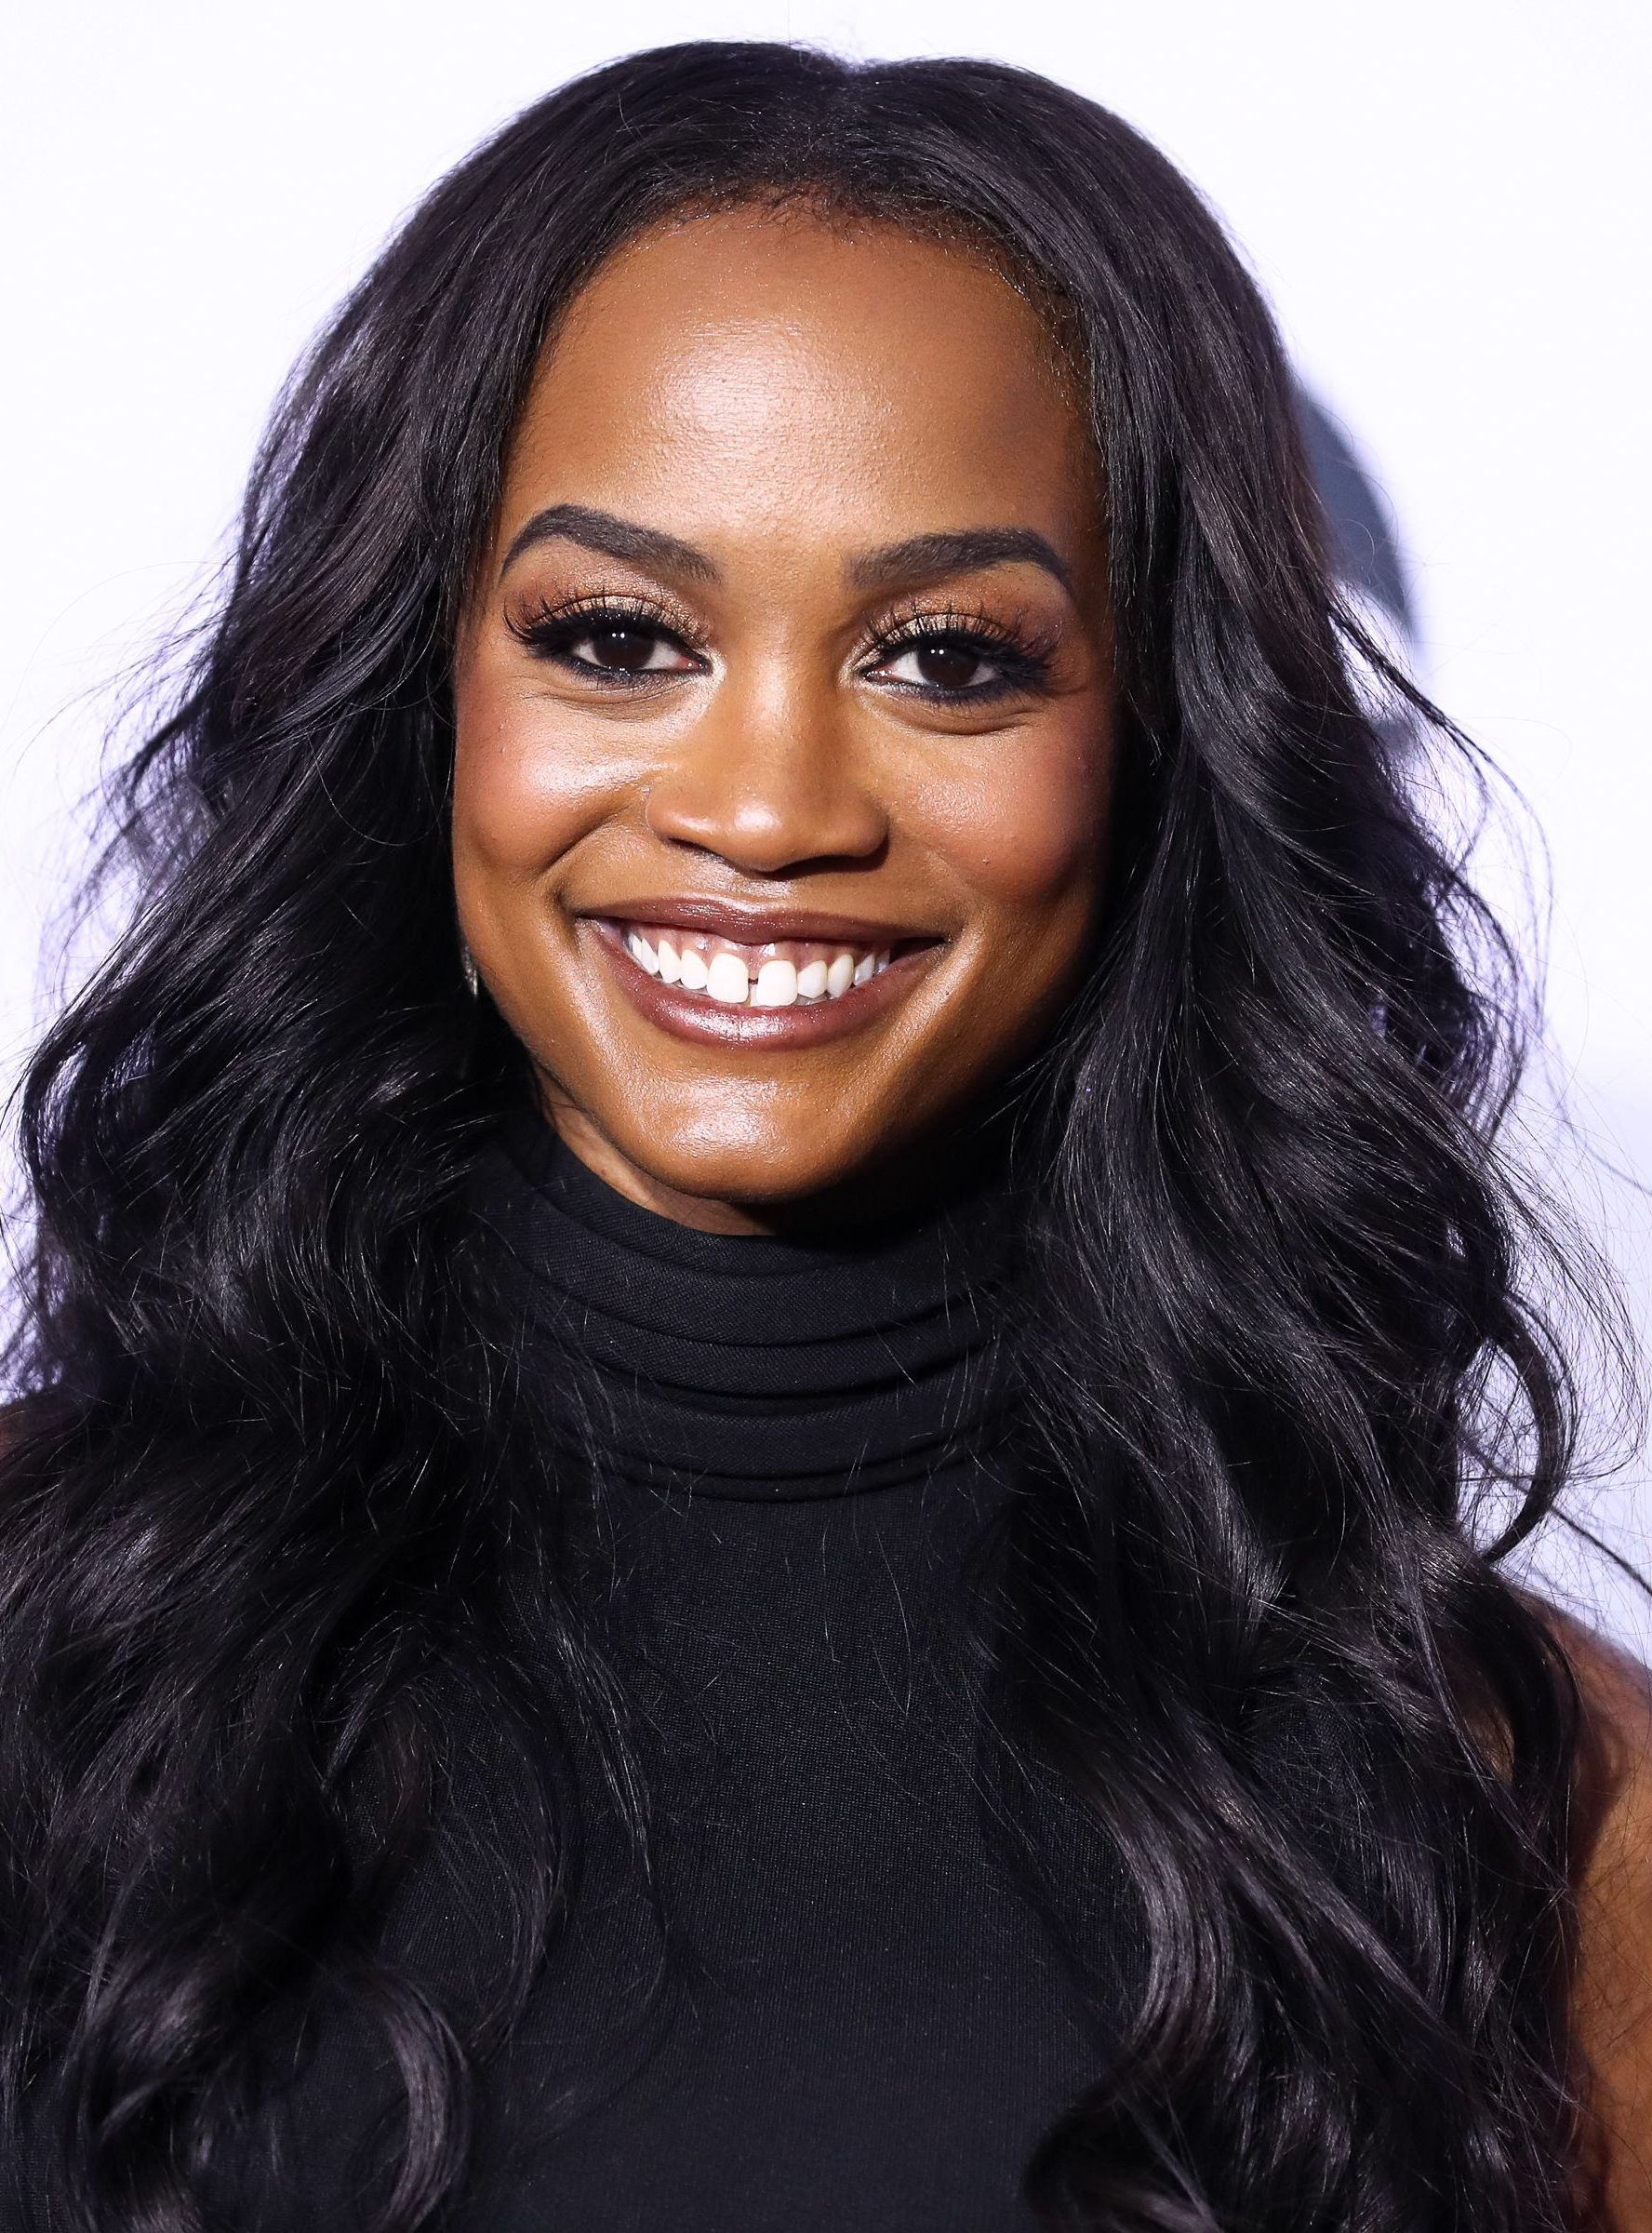 e6c633aaa09 Rachel Lindsay Watched Rumored Ex Kevin Durant Win The NBA Championship  http   r29